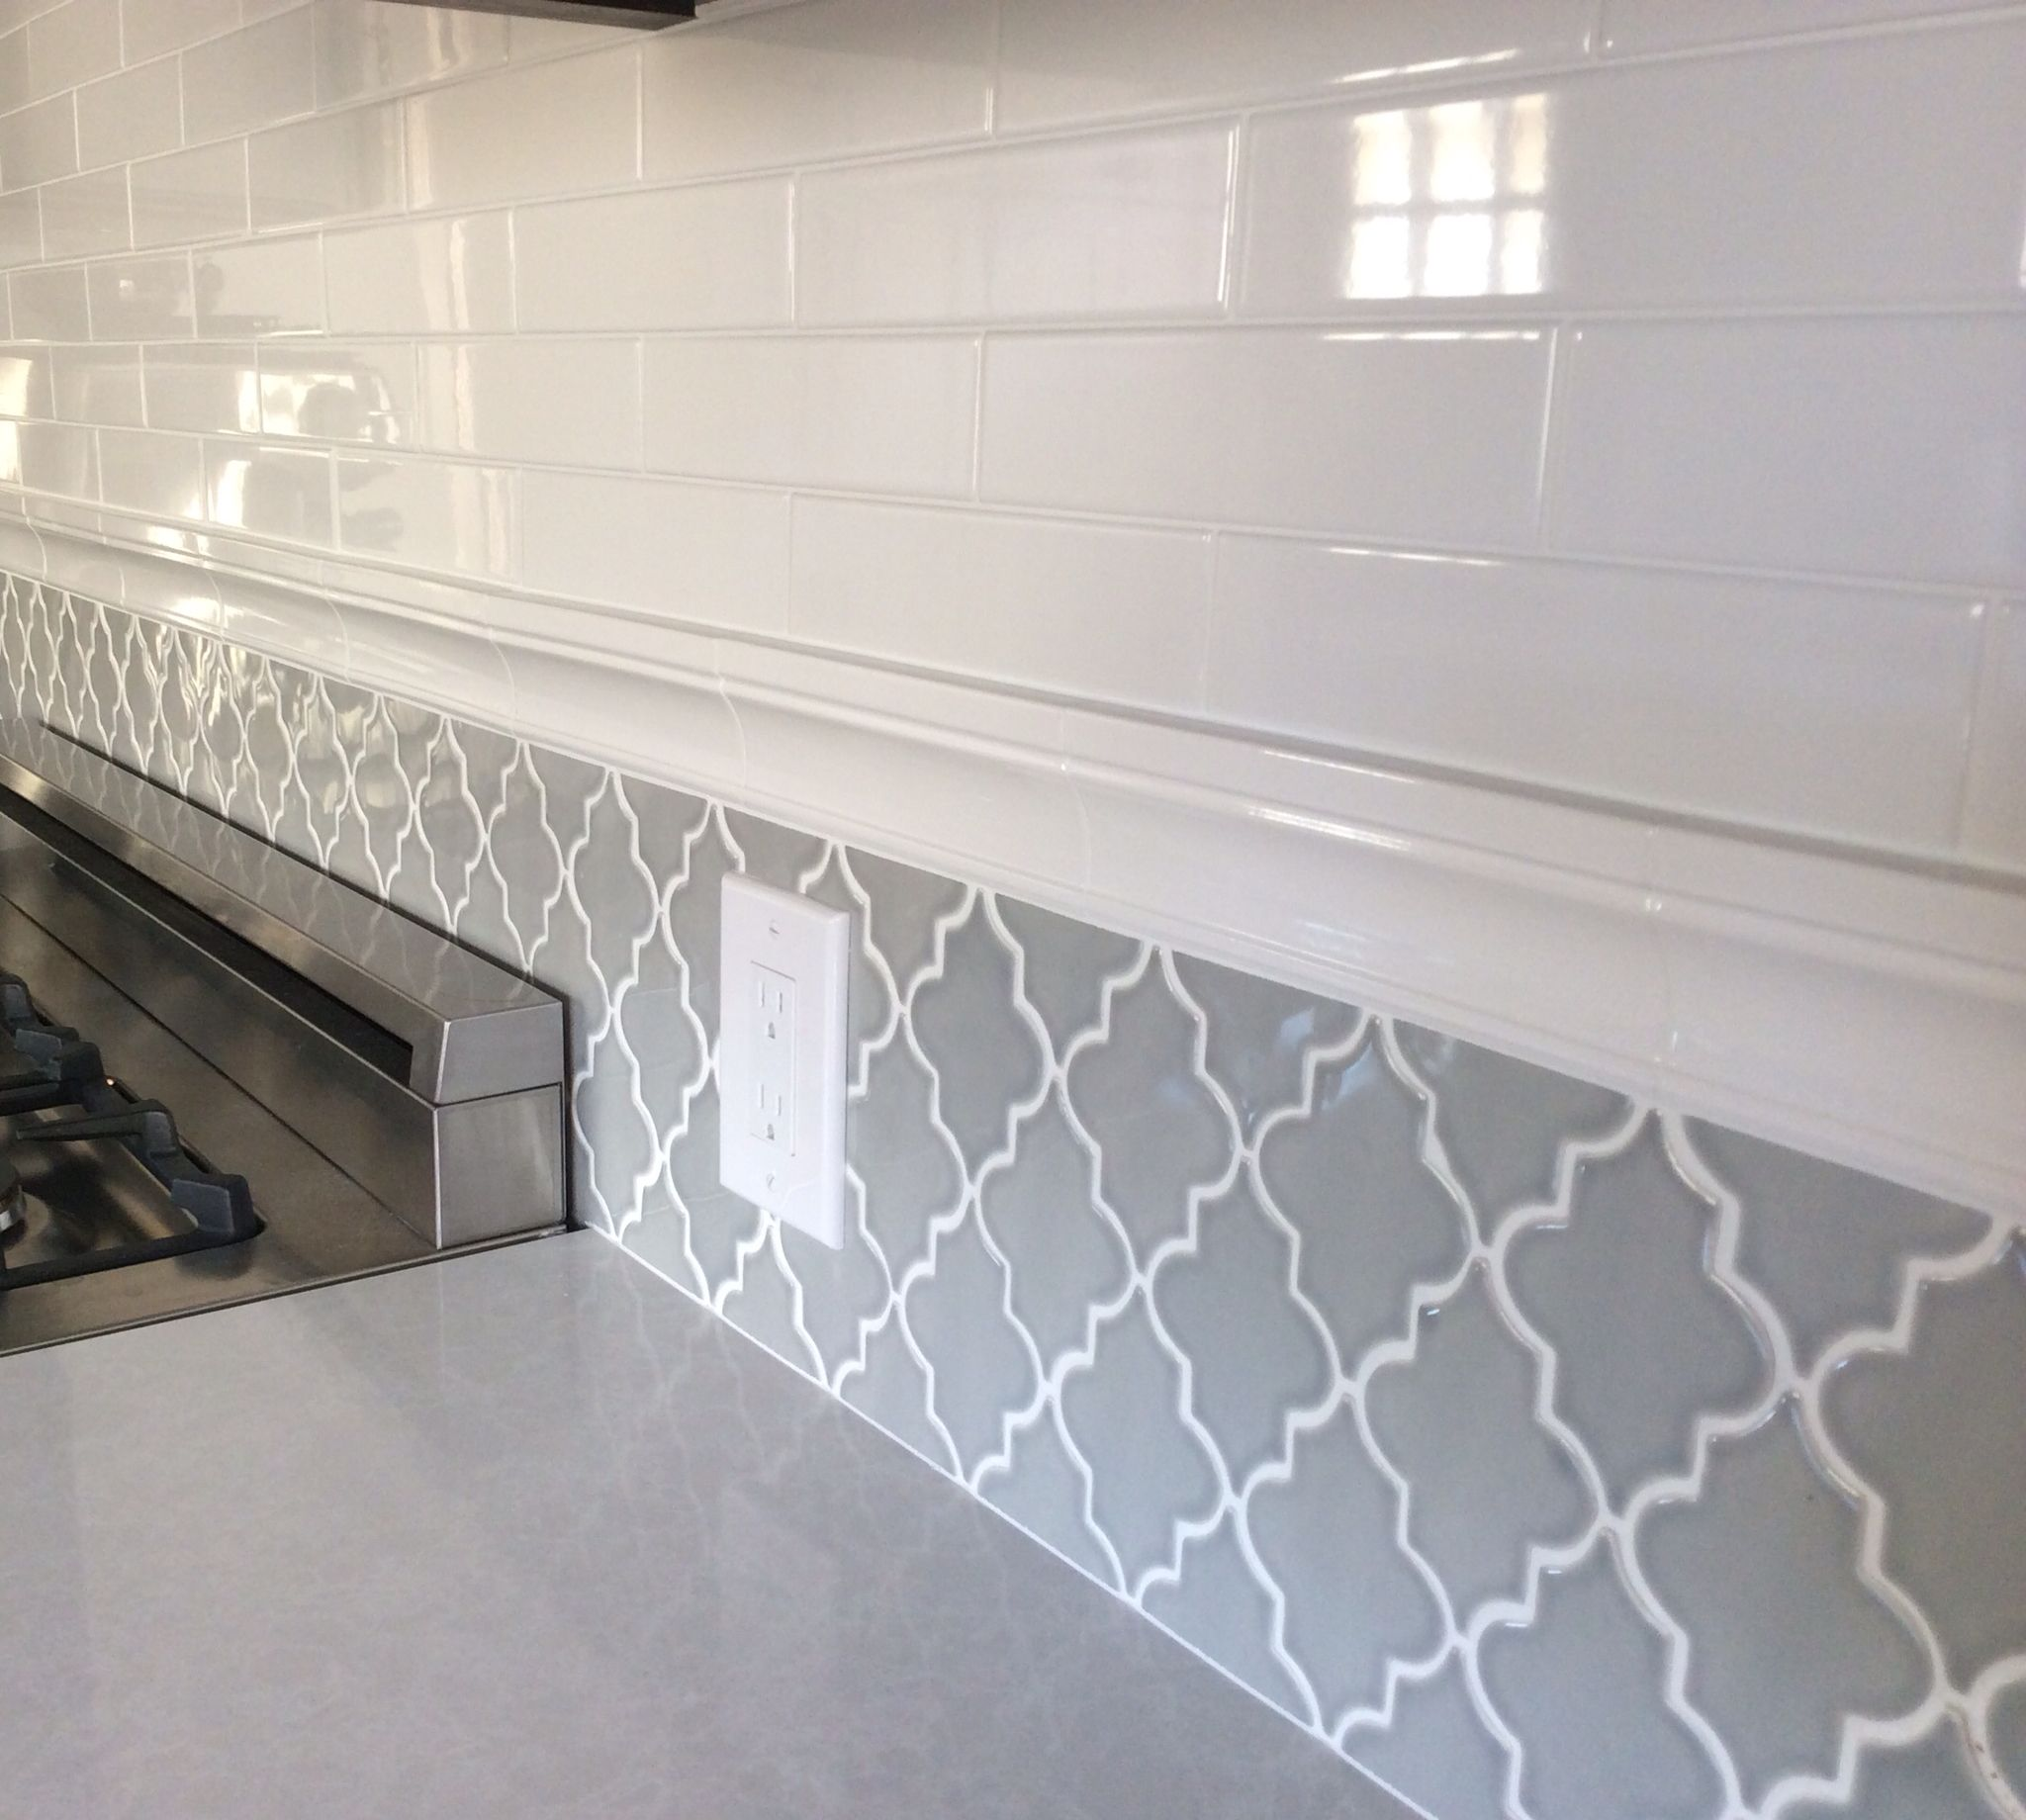 Backsplash in my new kitchen. Subway tiles and arabesque tile ...